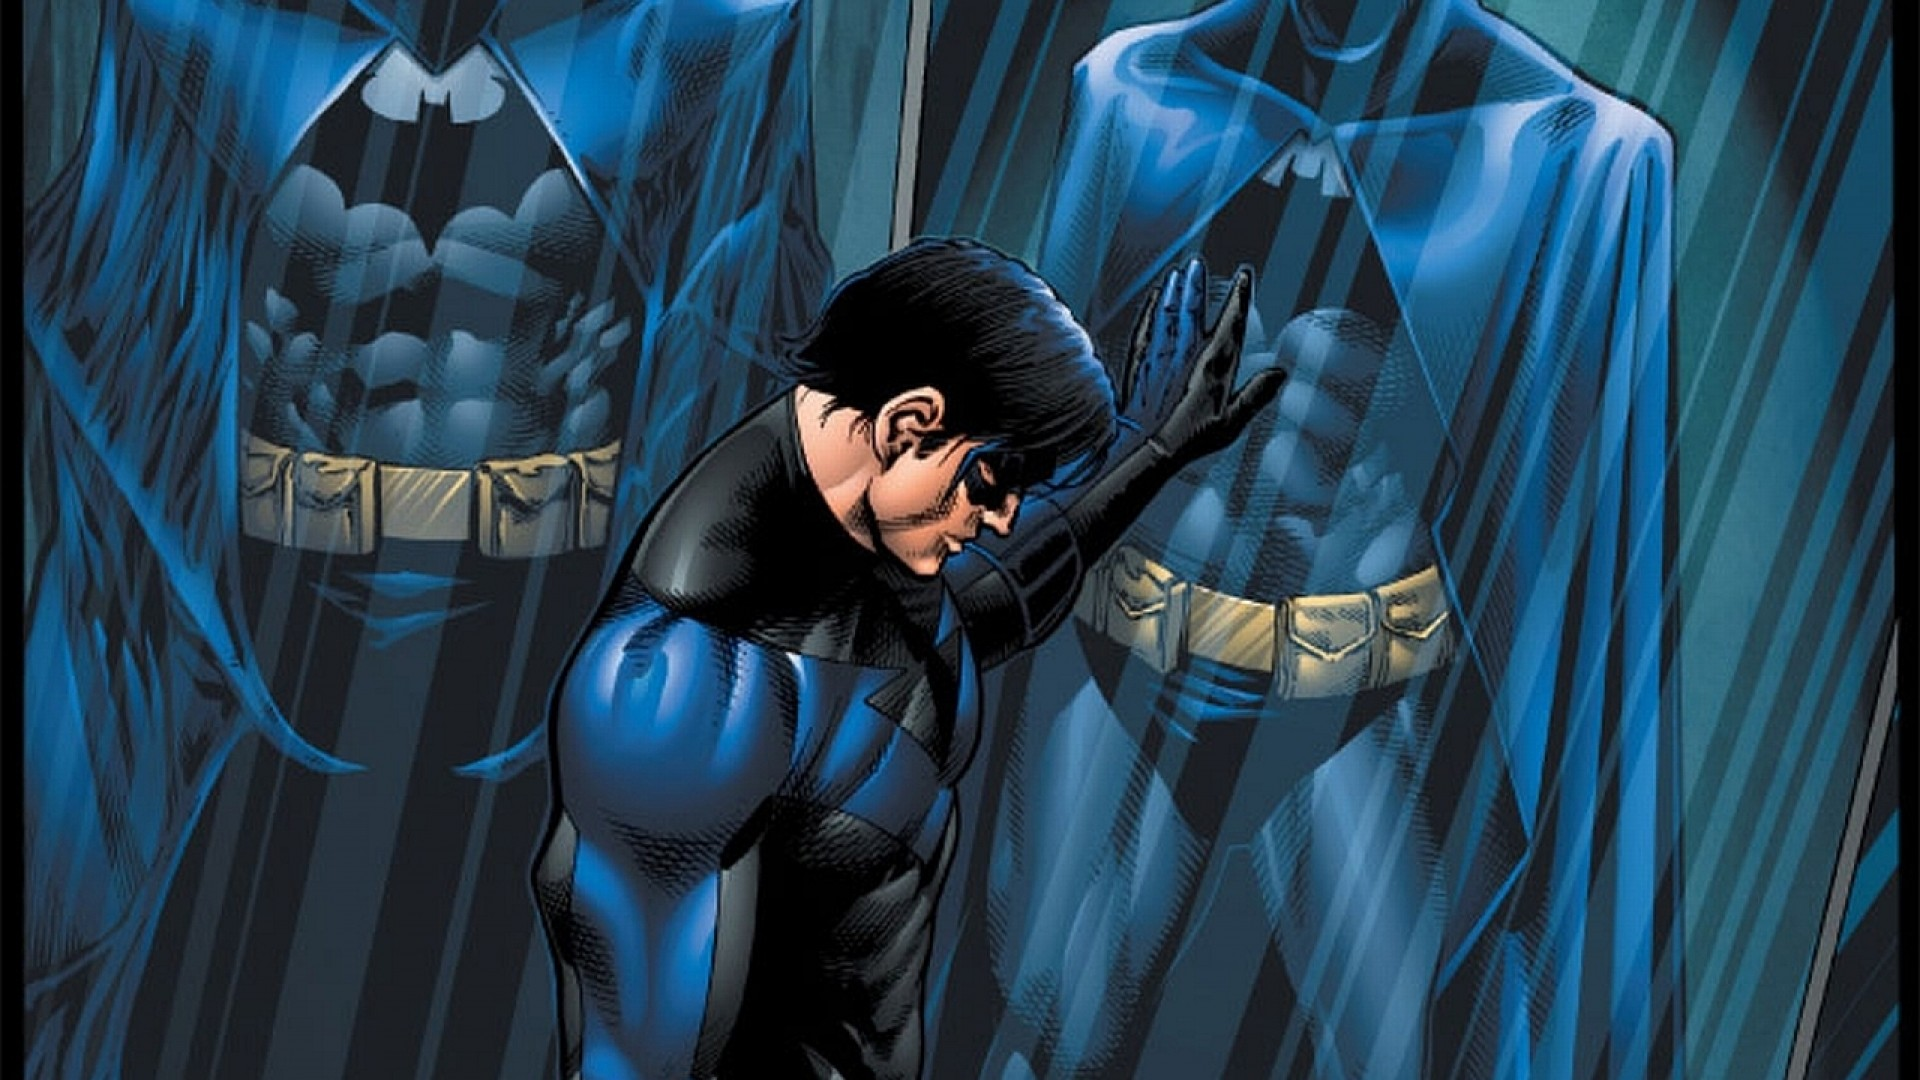 Res: 1920x1080, Nightwing Wallpapers Hd Resolution